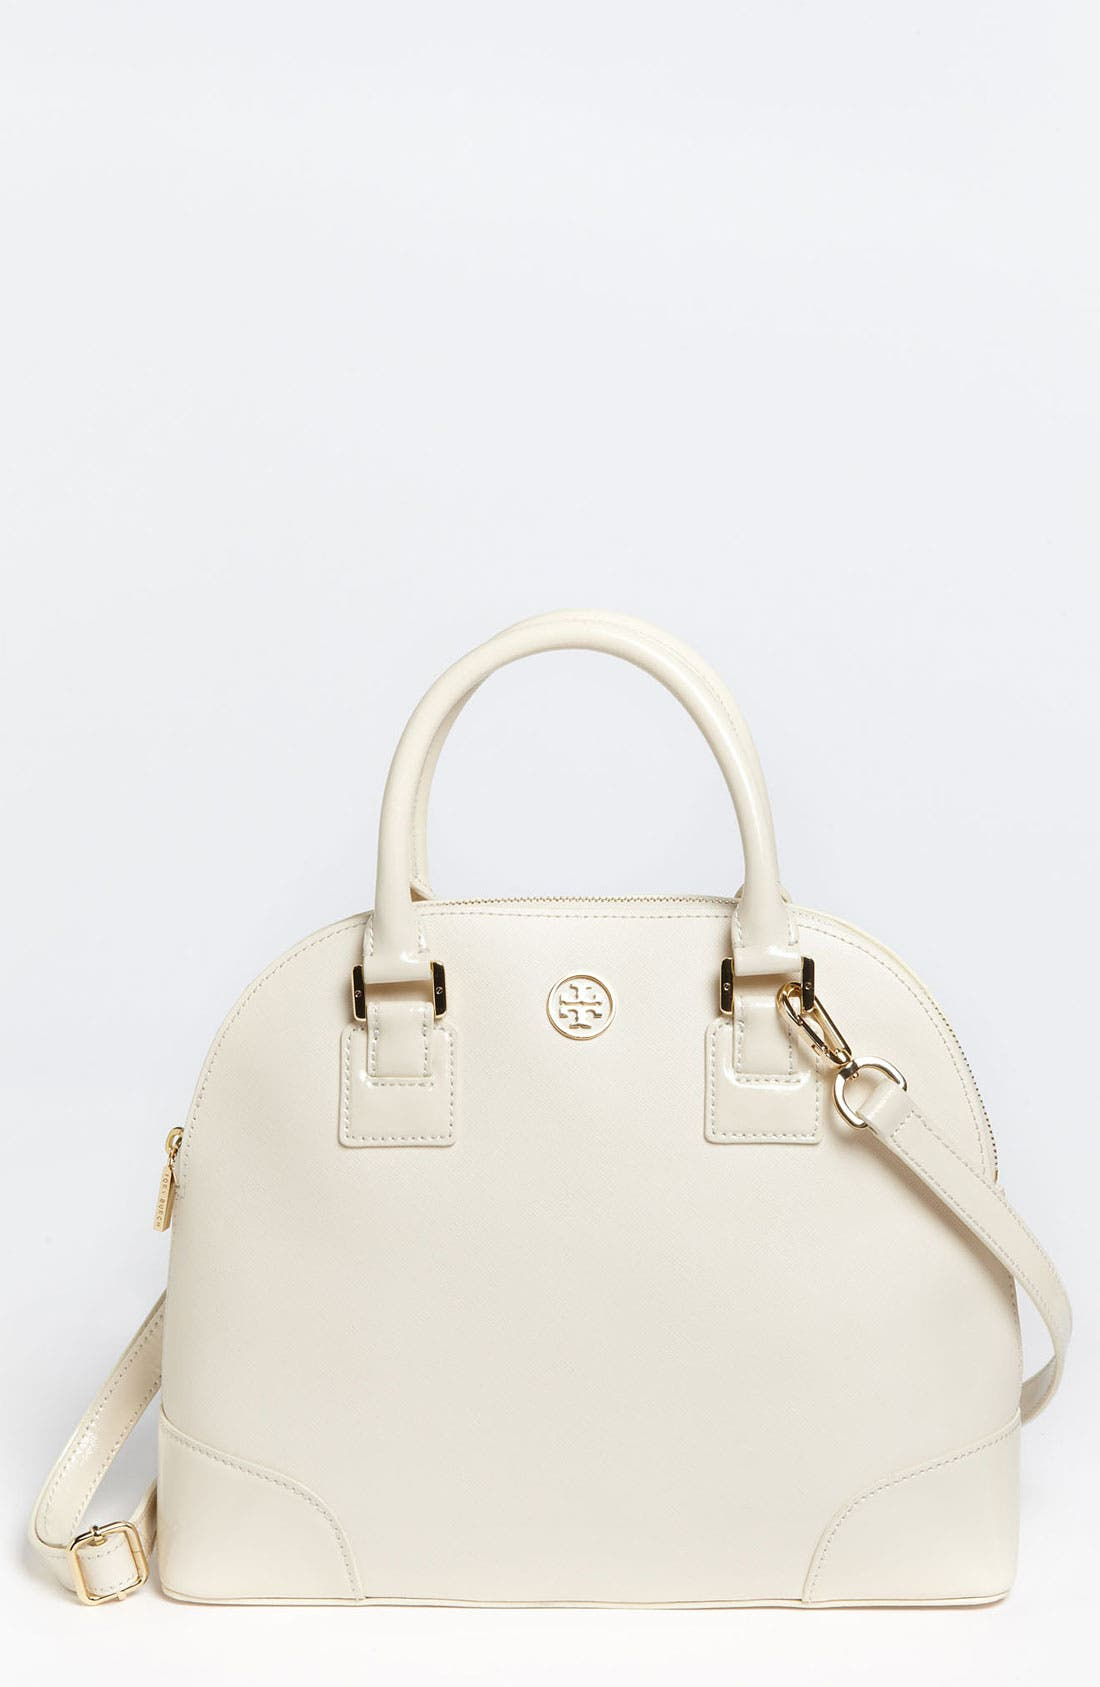 Alternate Image 1 Selected - Tory Burch 'Robinson - Small' Saffiano Leather Dome Satchel